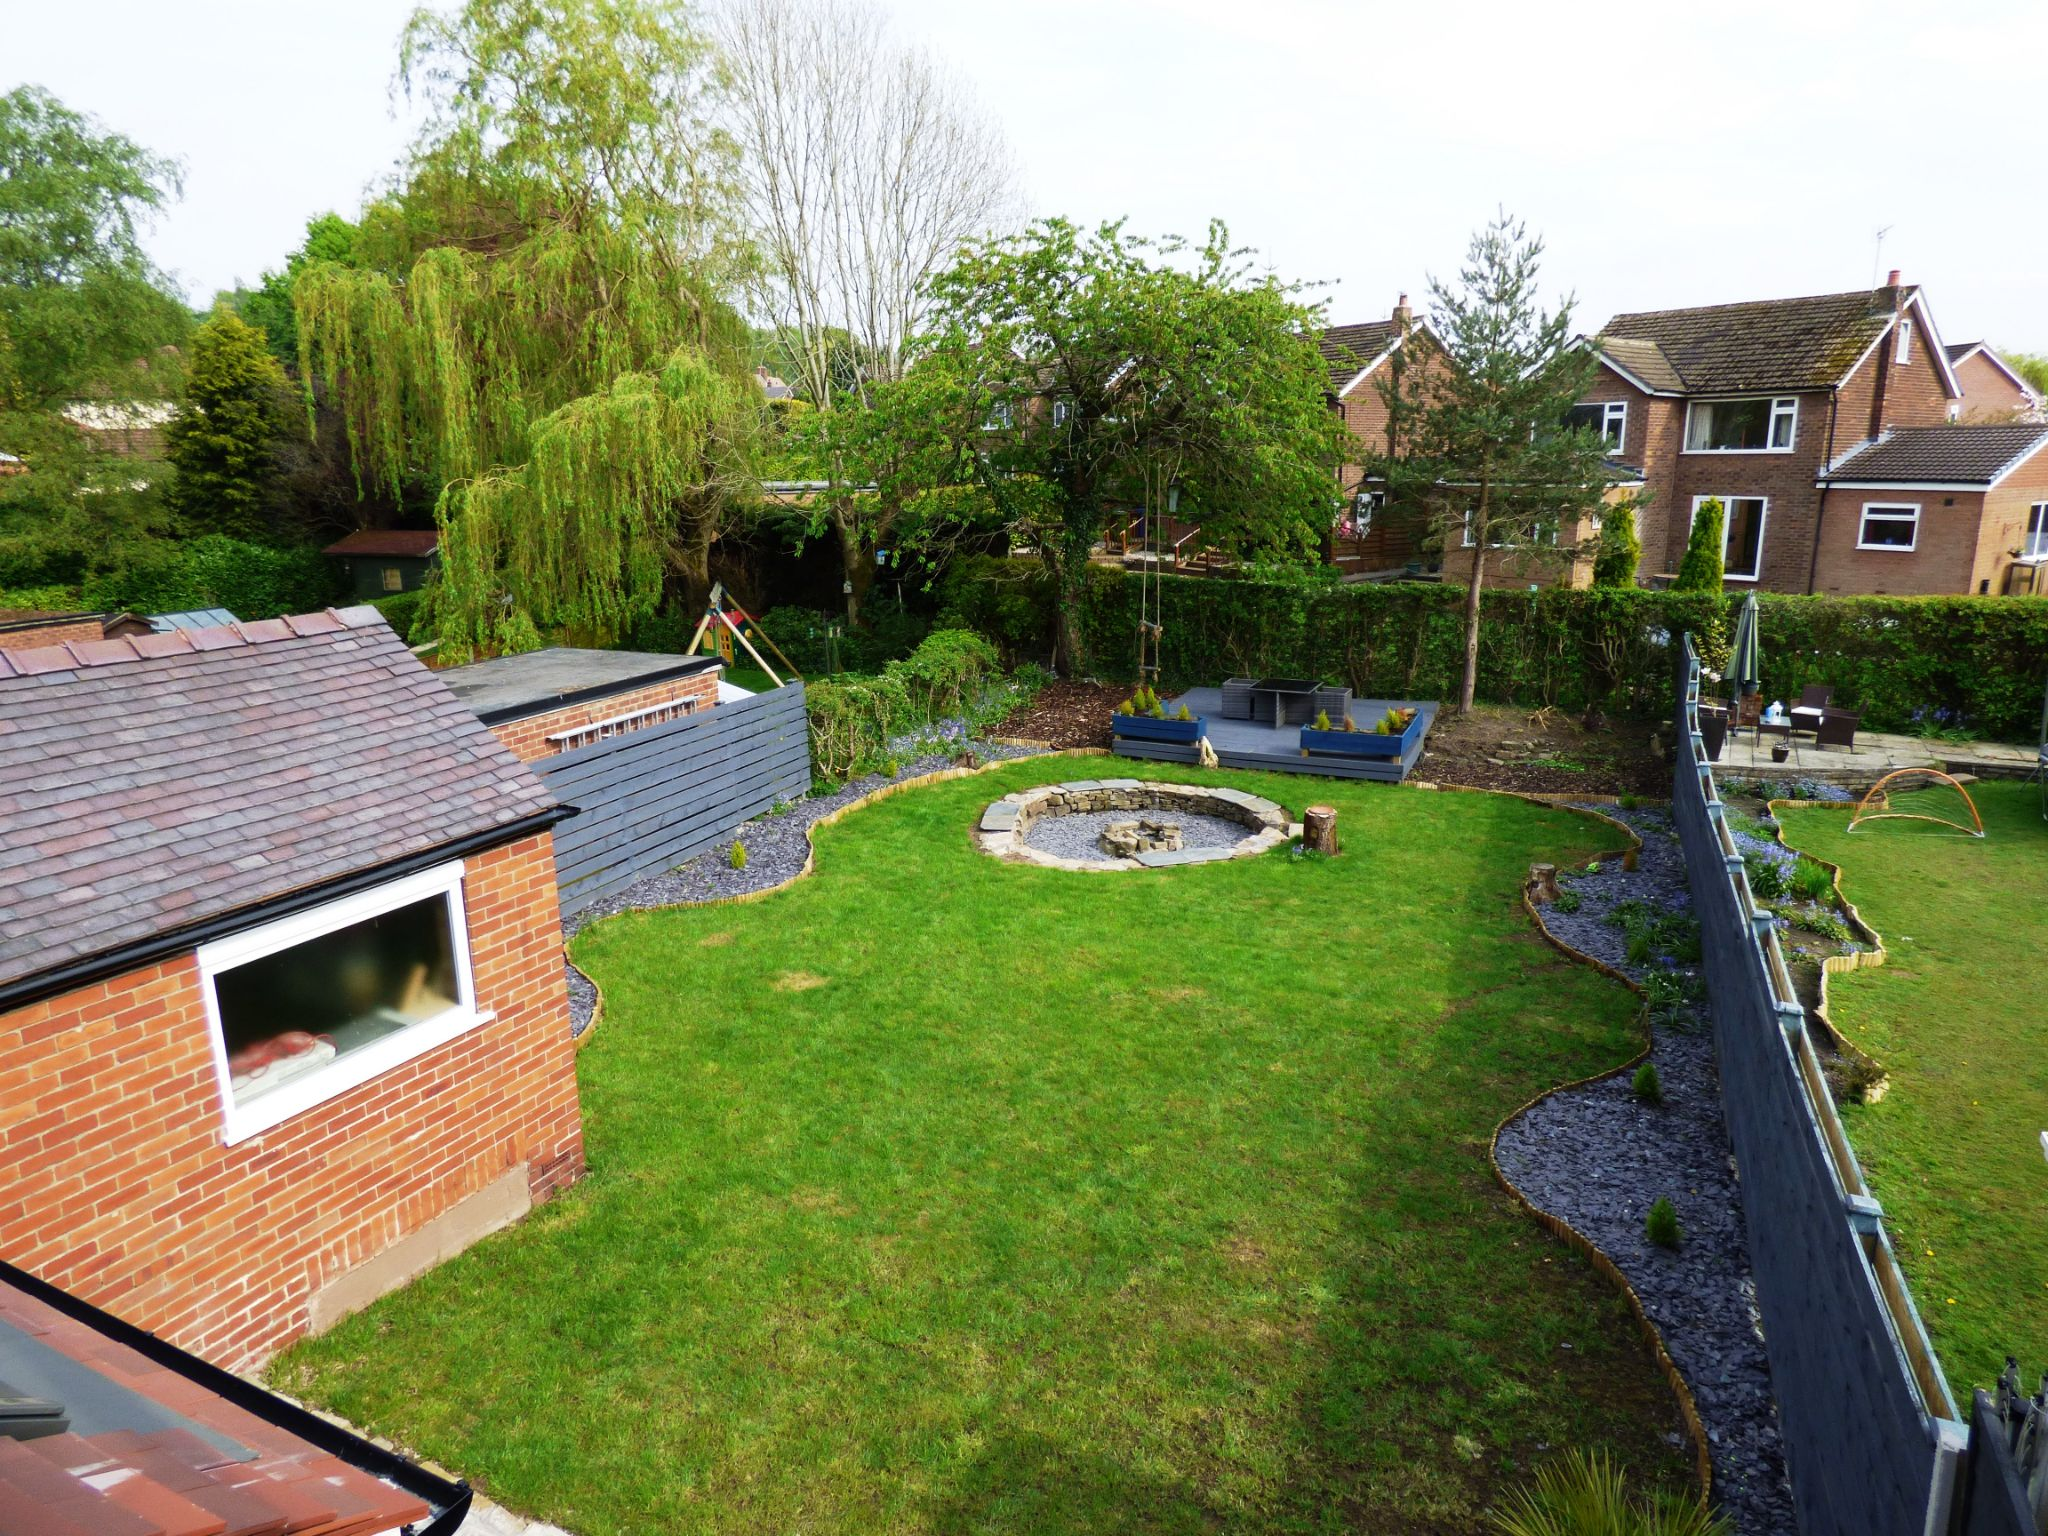 3 Bedroom Semi-detached House For Sale - Rear Garden